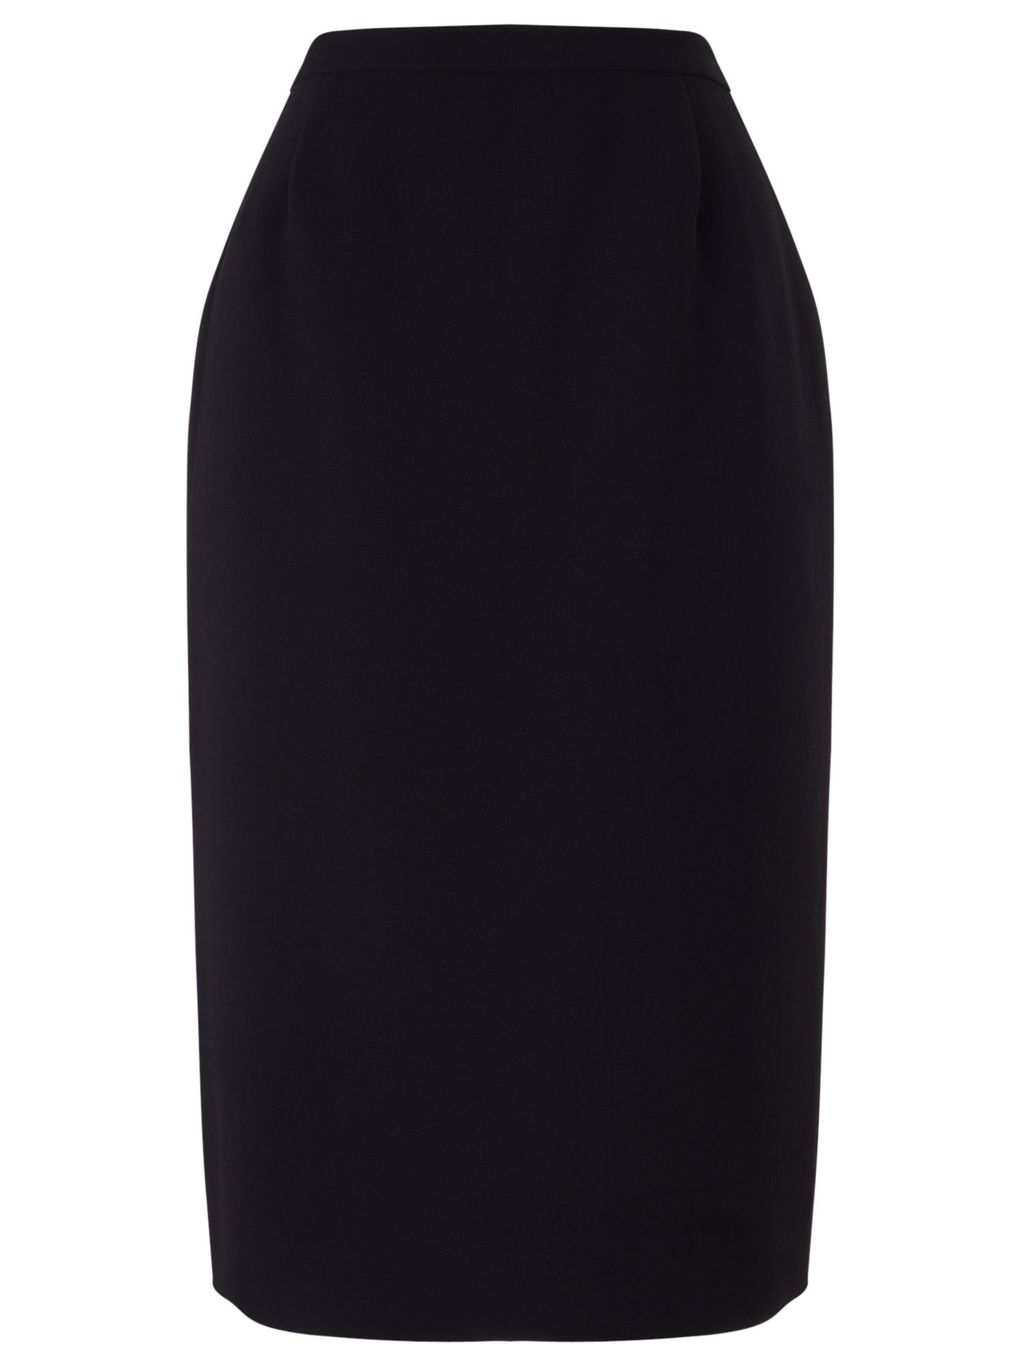 Crepe Pencil Skirt, Black - pattern: plain; style: pencil; fit: tailored/fitted; waist: high rise; predominant colour: black; occasions: work; length: just above the knee; fibres: polyester/polyamide - 100%; texture group: crepes; pattern type: fabric; season: s/s 2016; wardrobe: basic